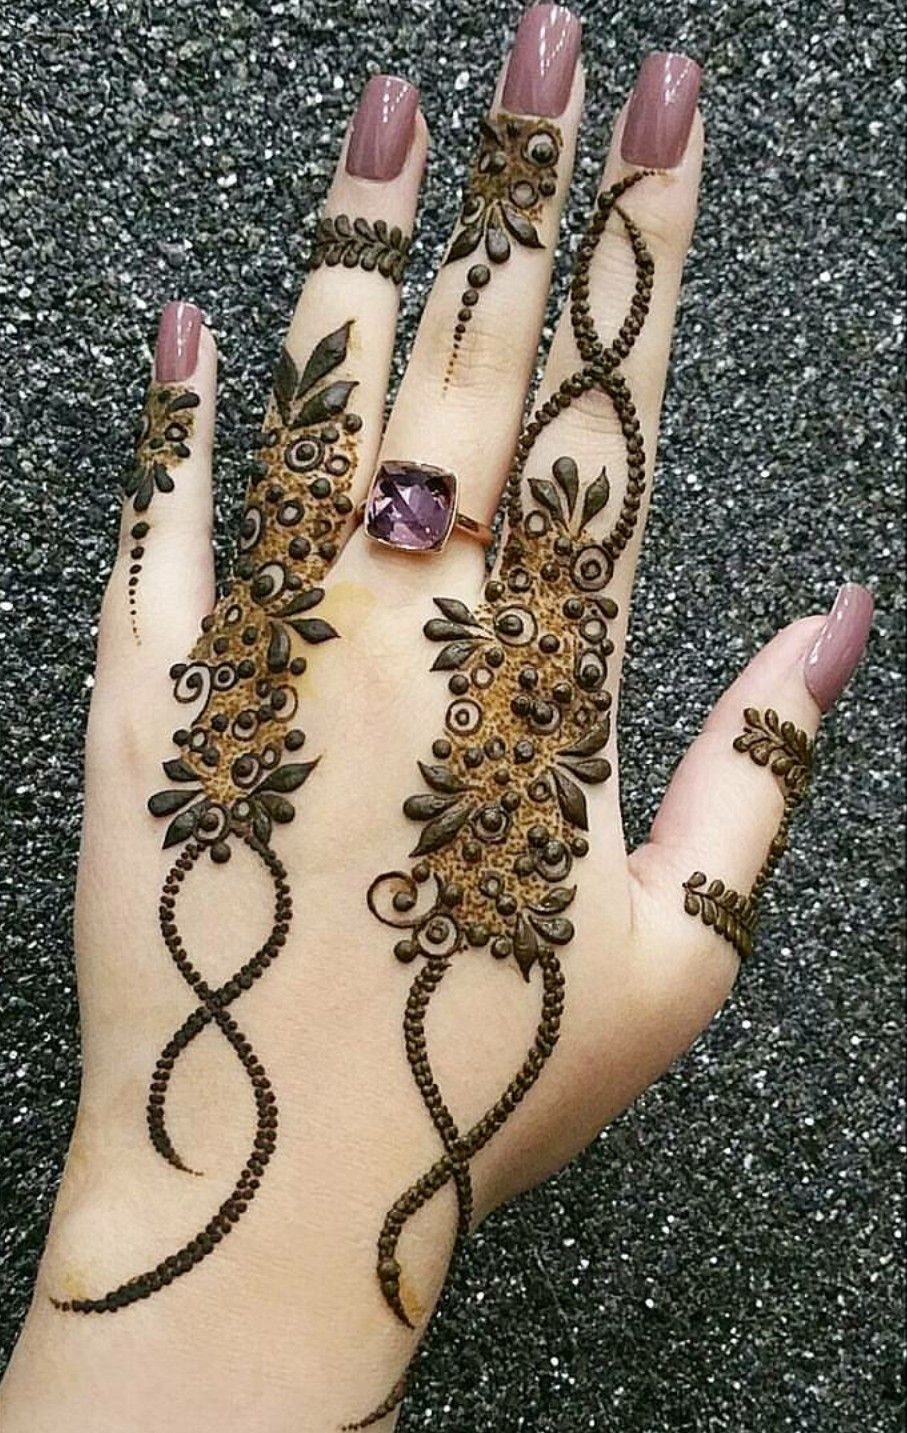 Pin By Elsie Van Jaarsveld On Henna Mehndi Designs 2018 Latest Mehndi Designs Mehndi Designs For Fingers